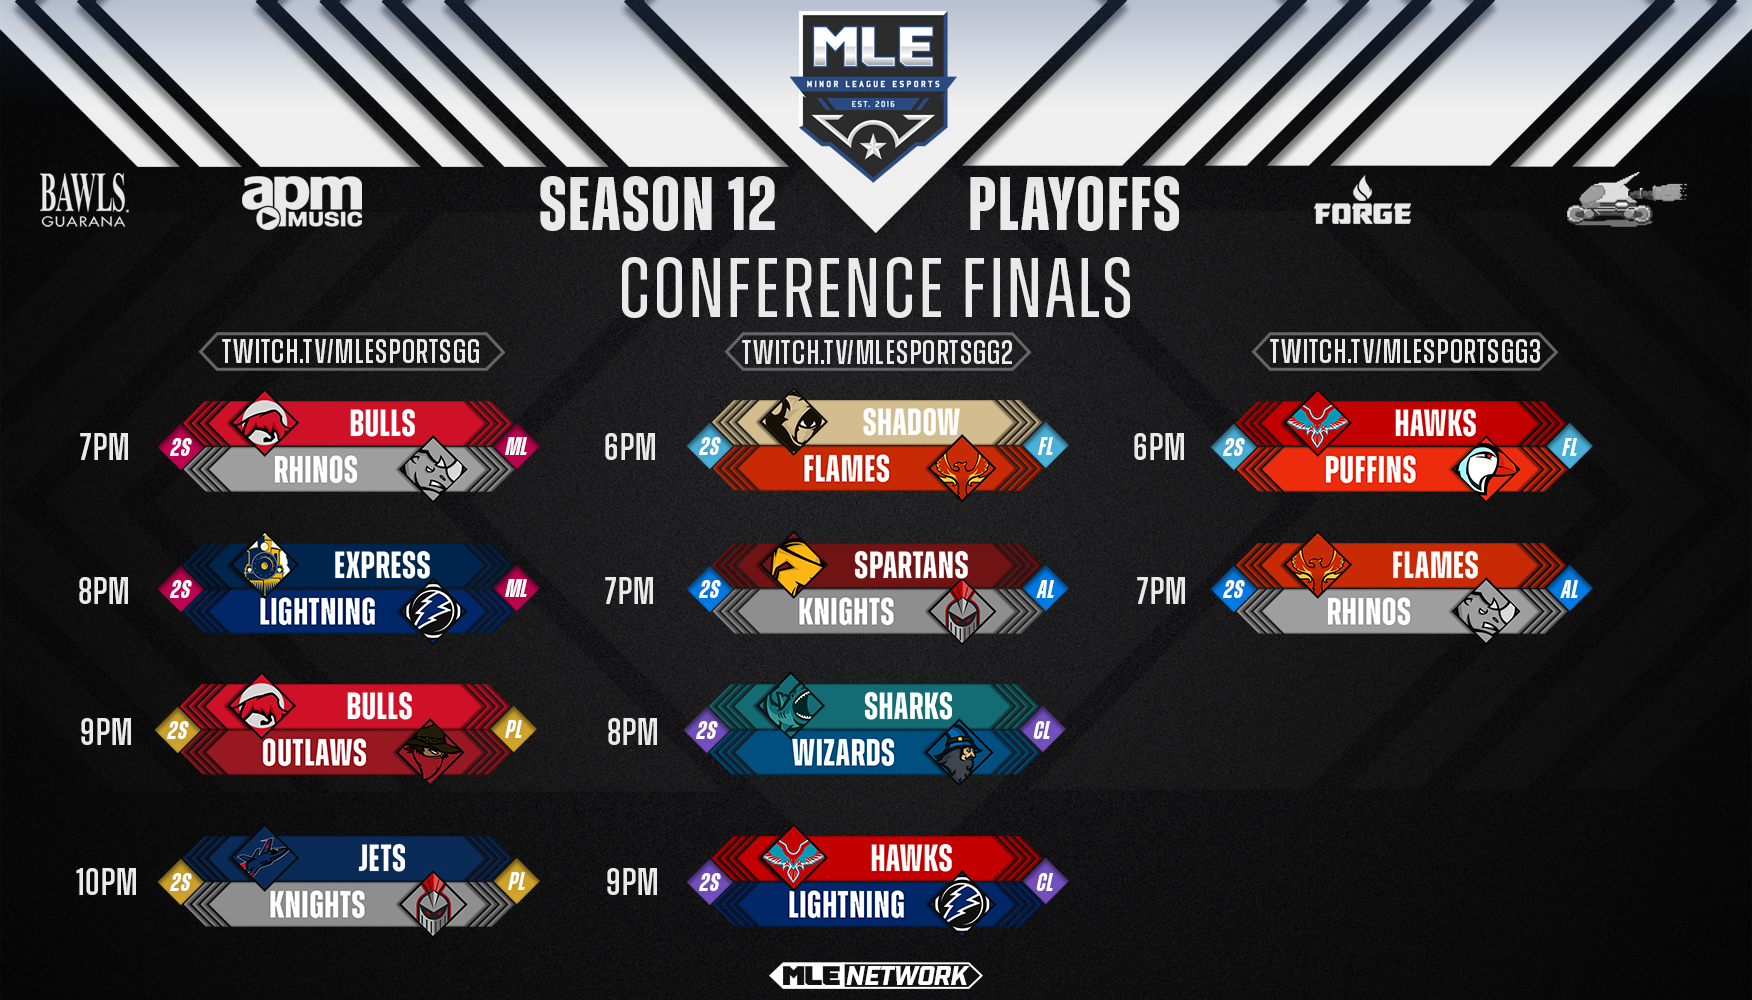 Playoff Preview: Doubles Conference Finals